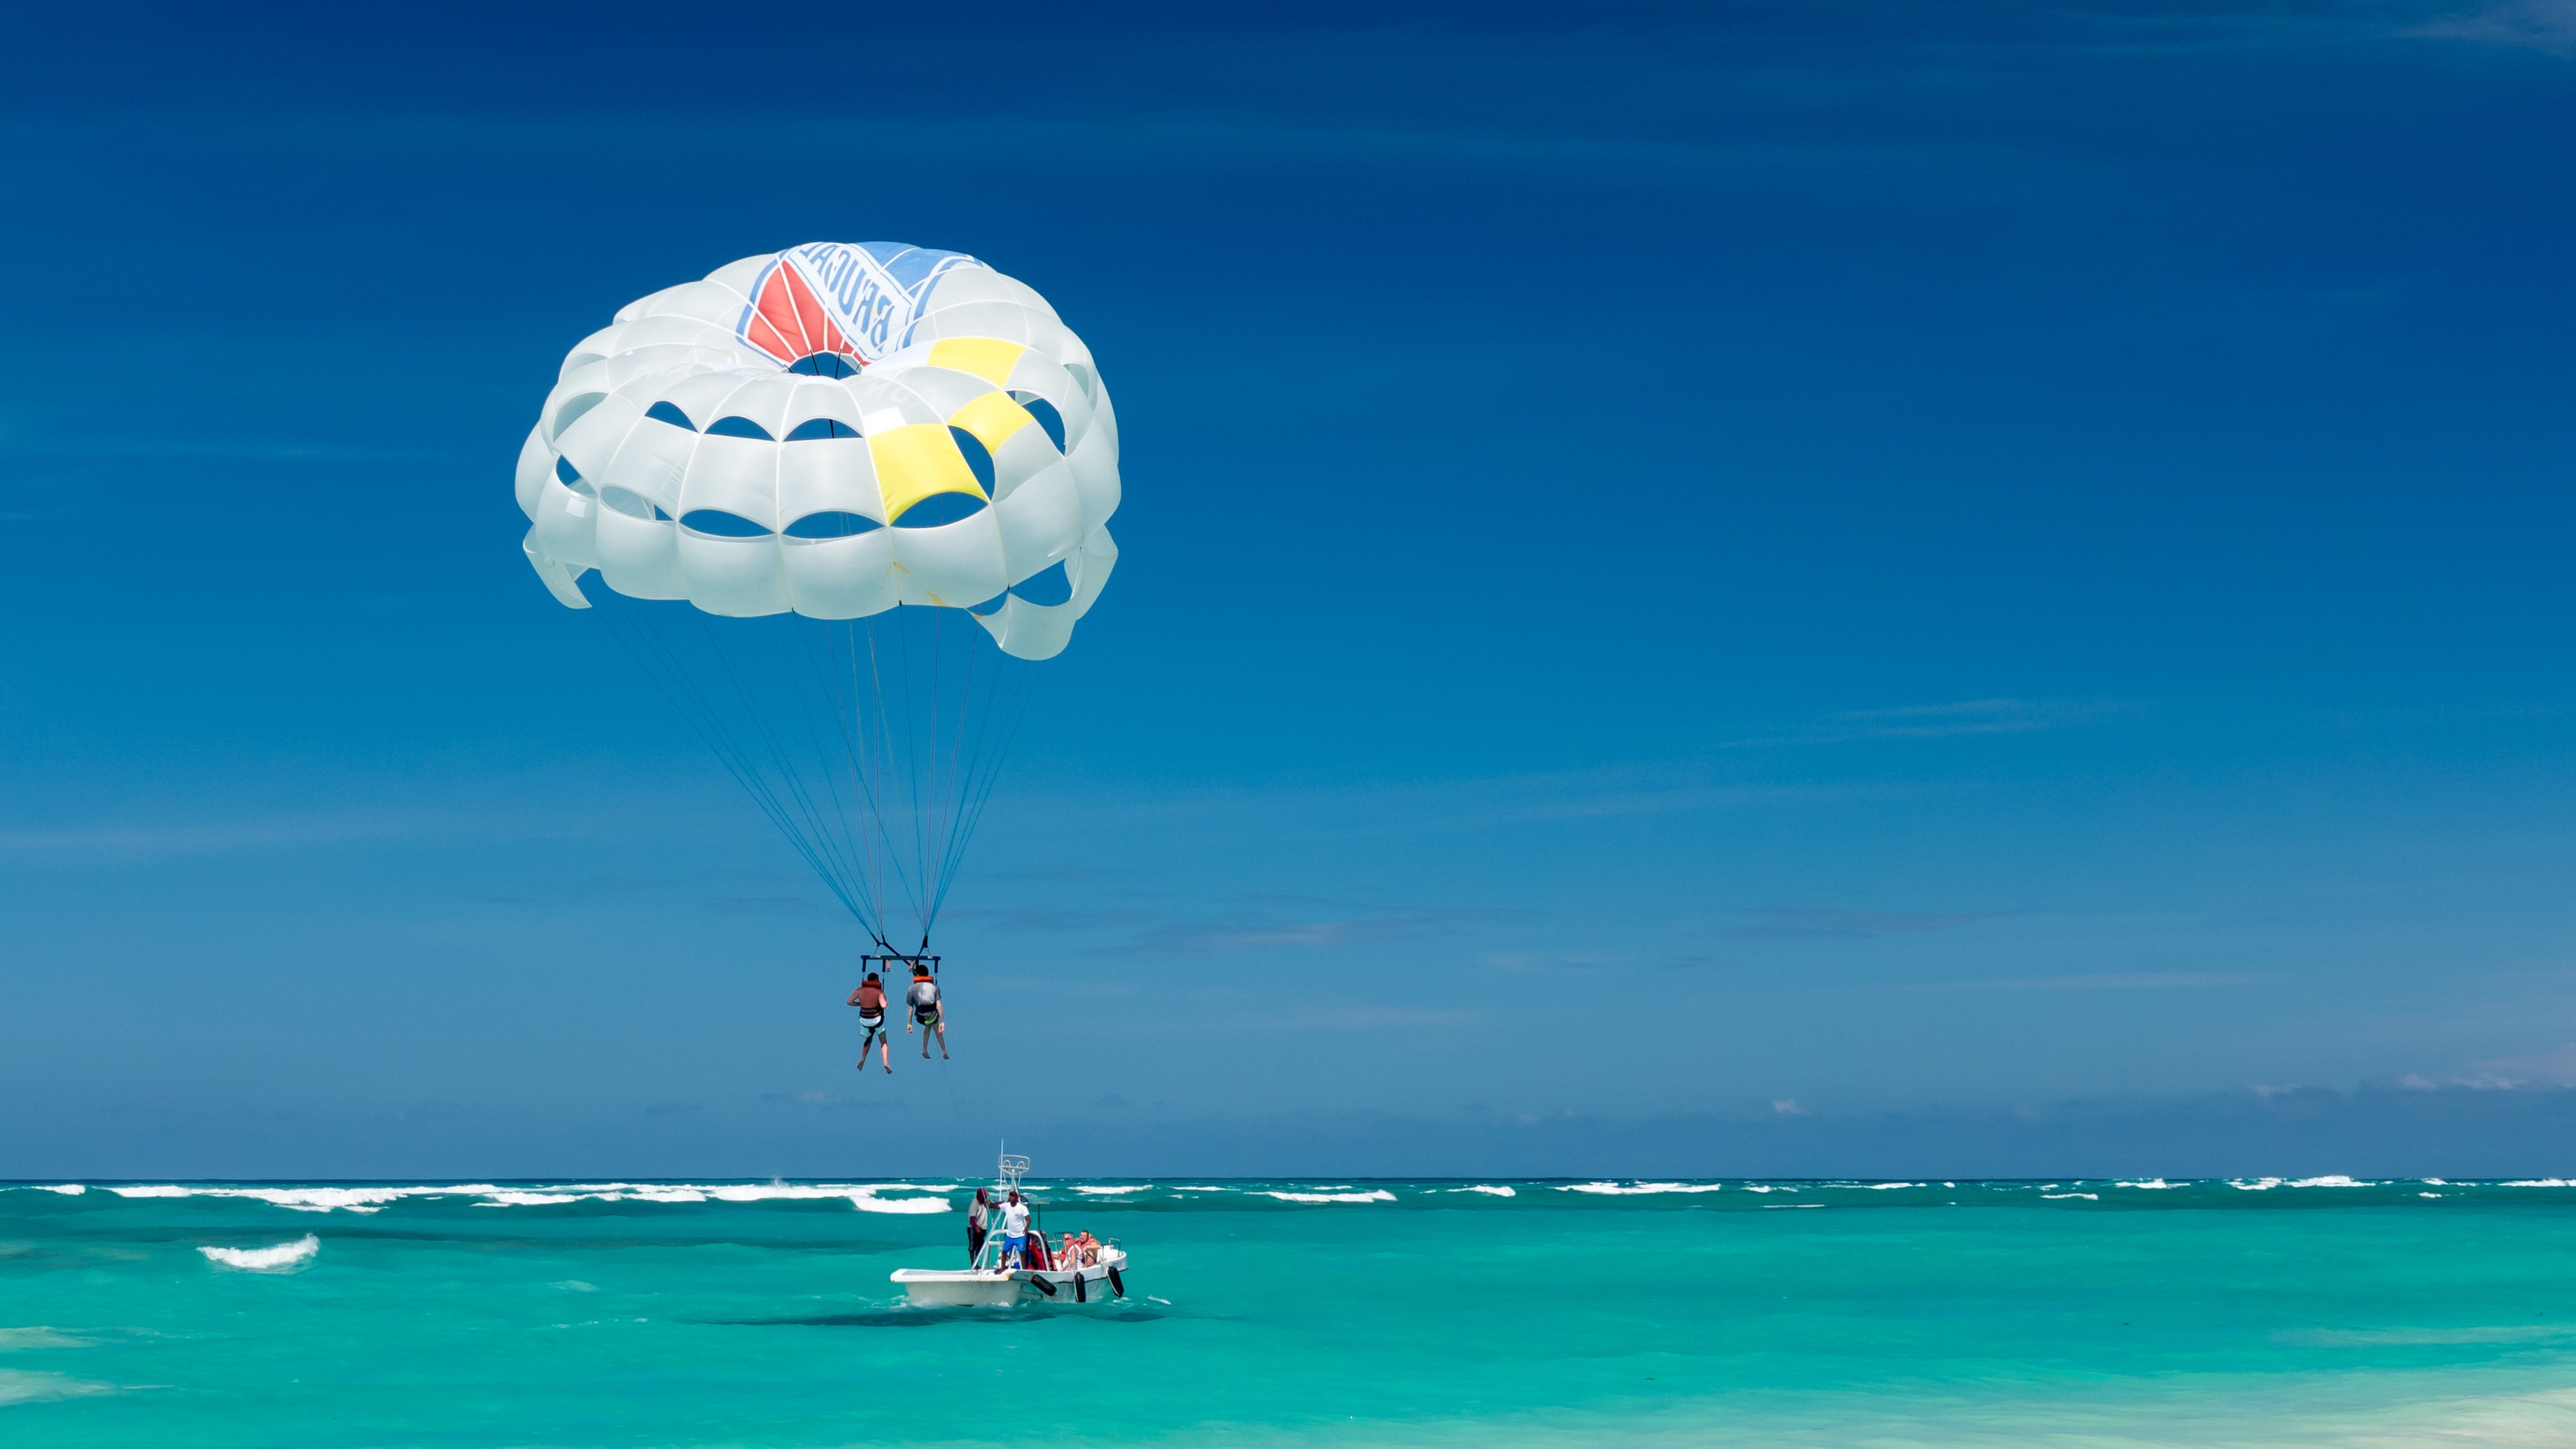 two person riding parachute near beach